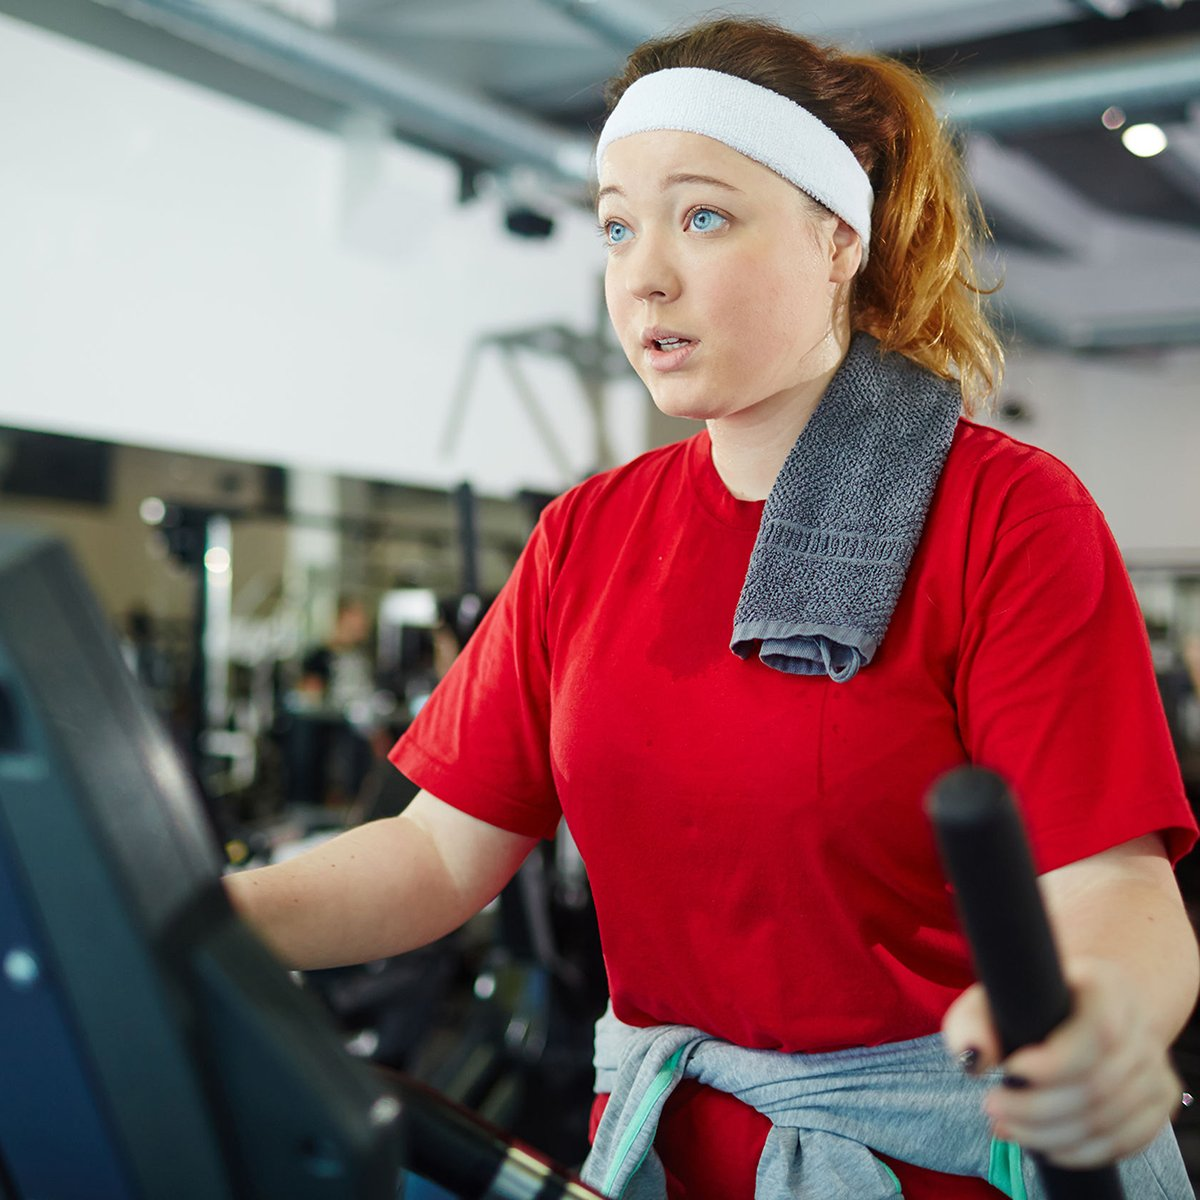 Physical Activity & Exercise After Bariatric Surgery